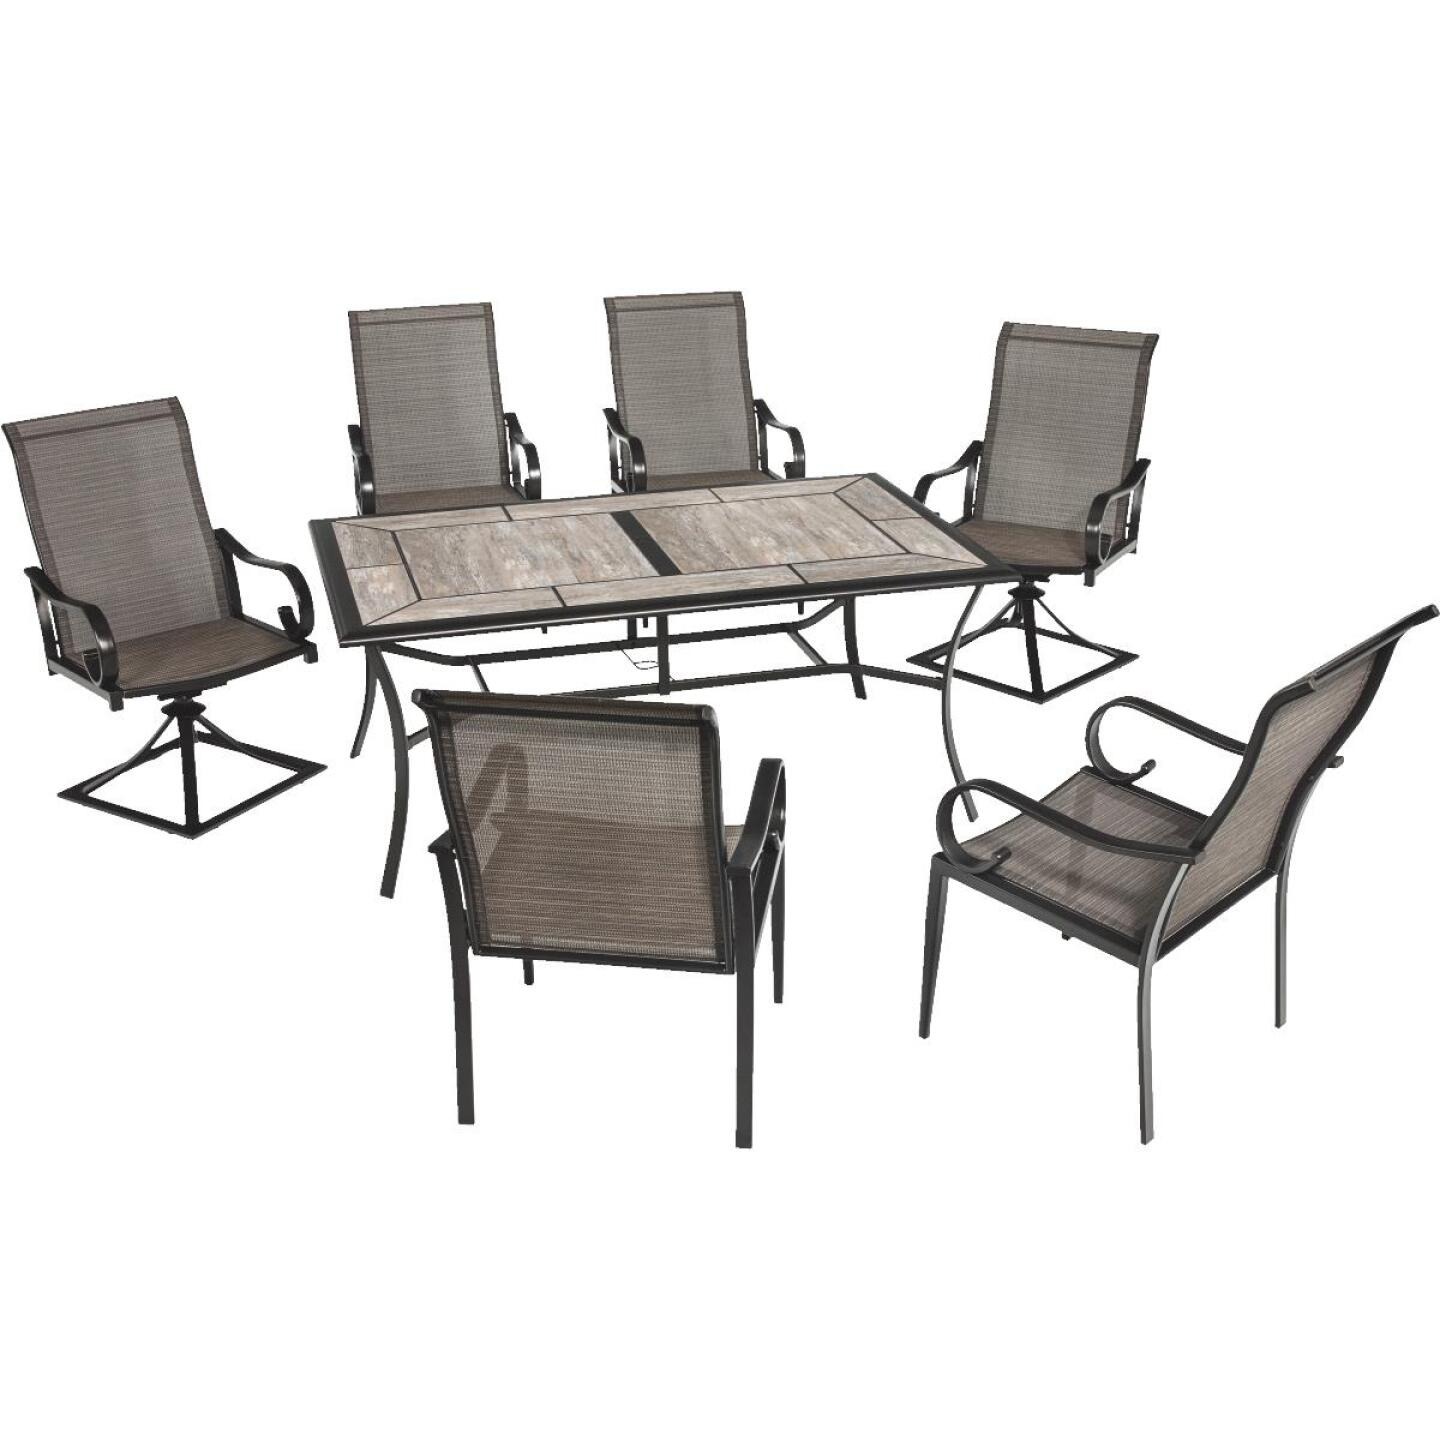 Outdoor Expressions Berkshire 7-Piece Dining Set Image 185